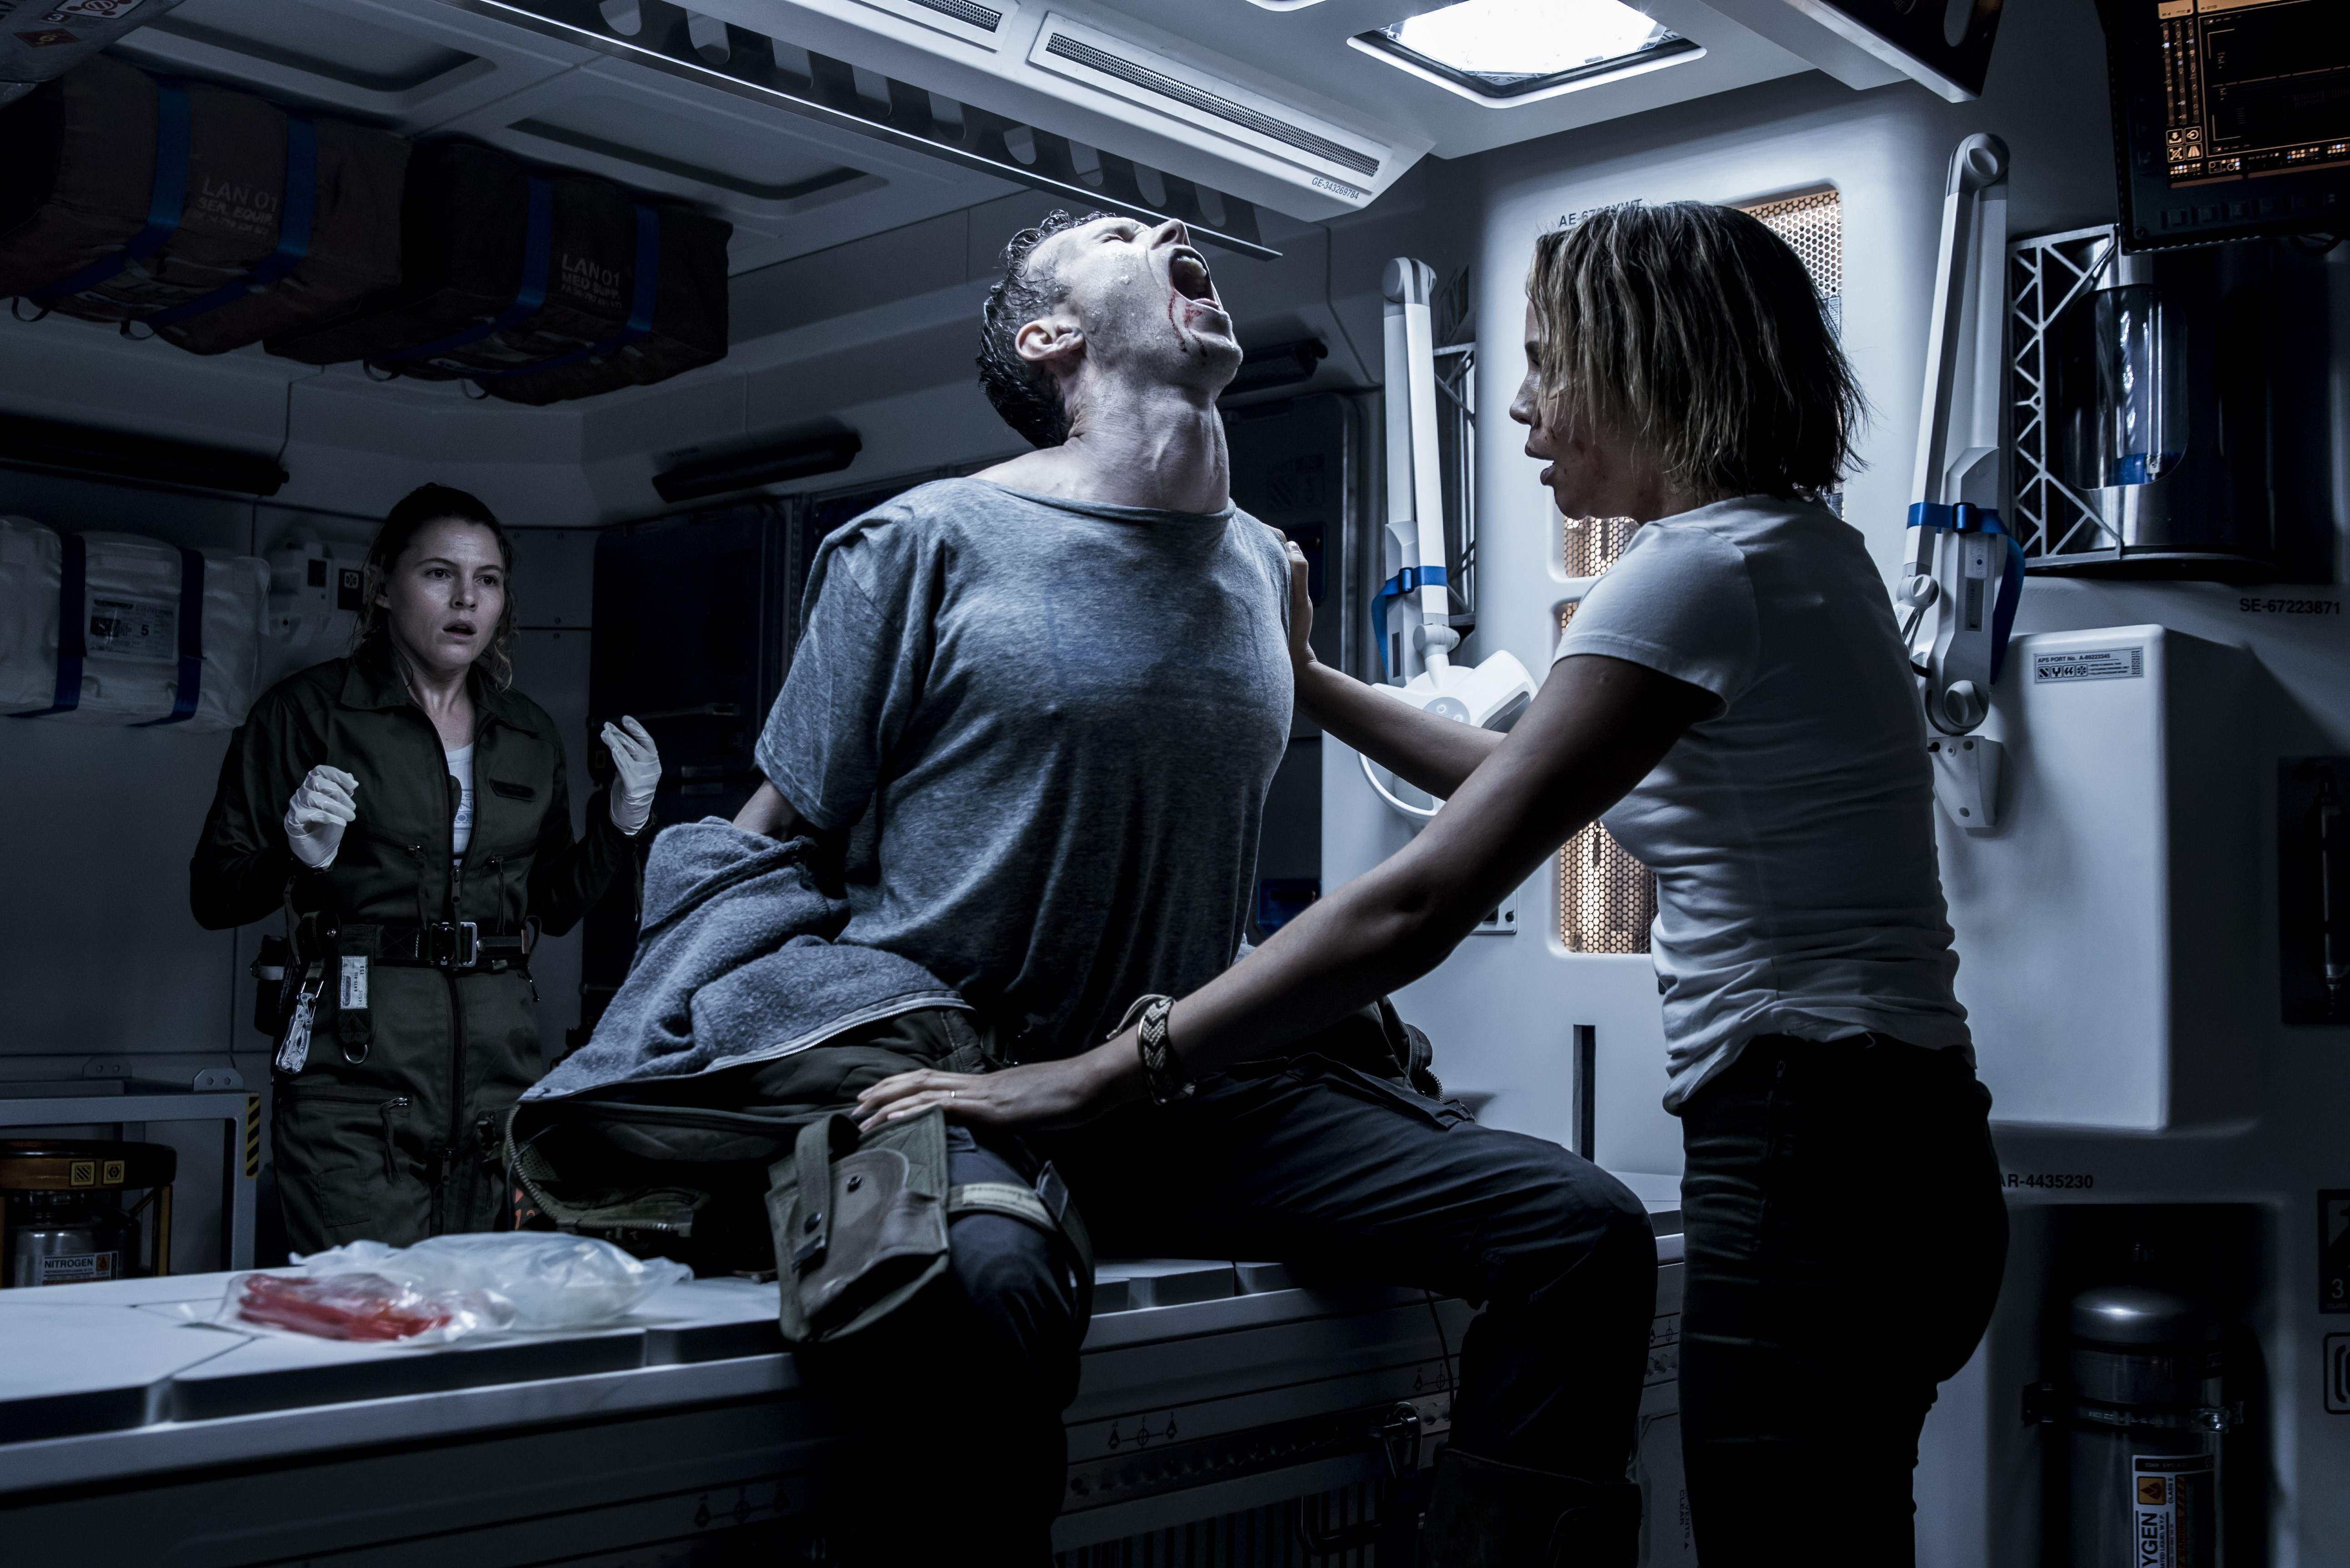 Ridley Scott Alien Covenant